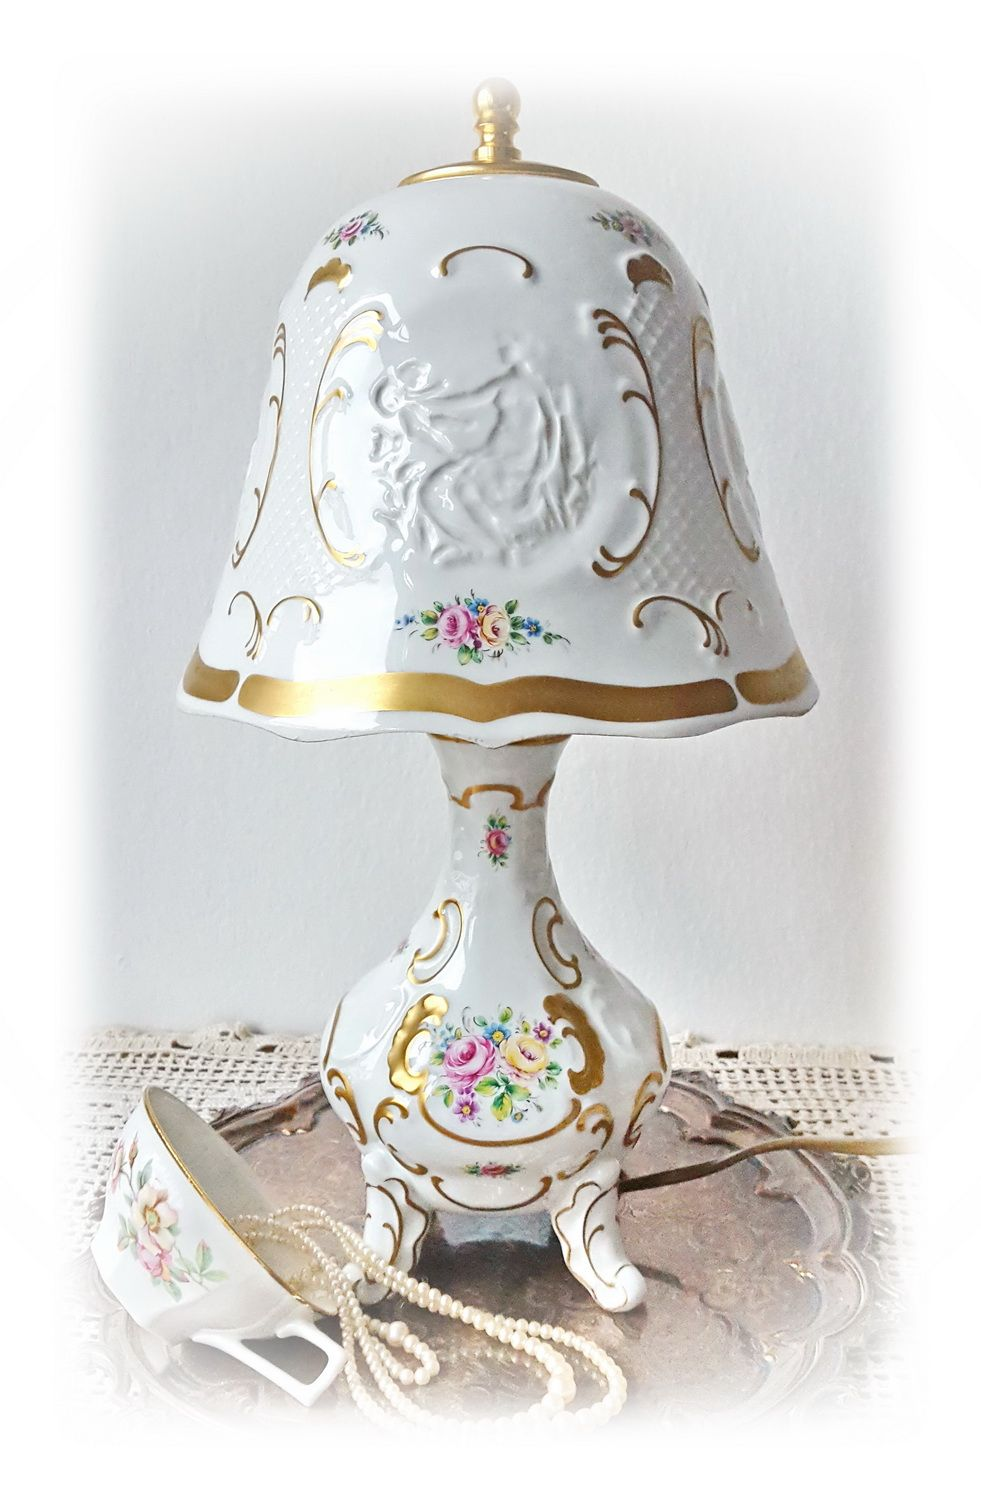 The Lamp With The Lithophane Was Made By German Manufacture Lindner